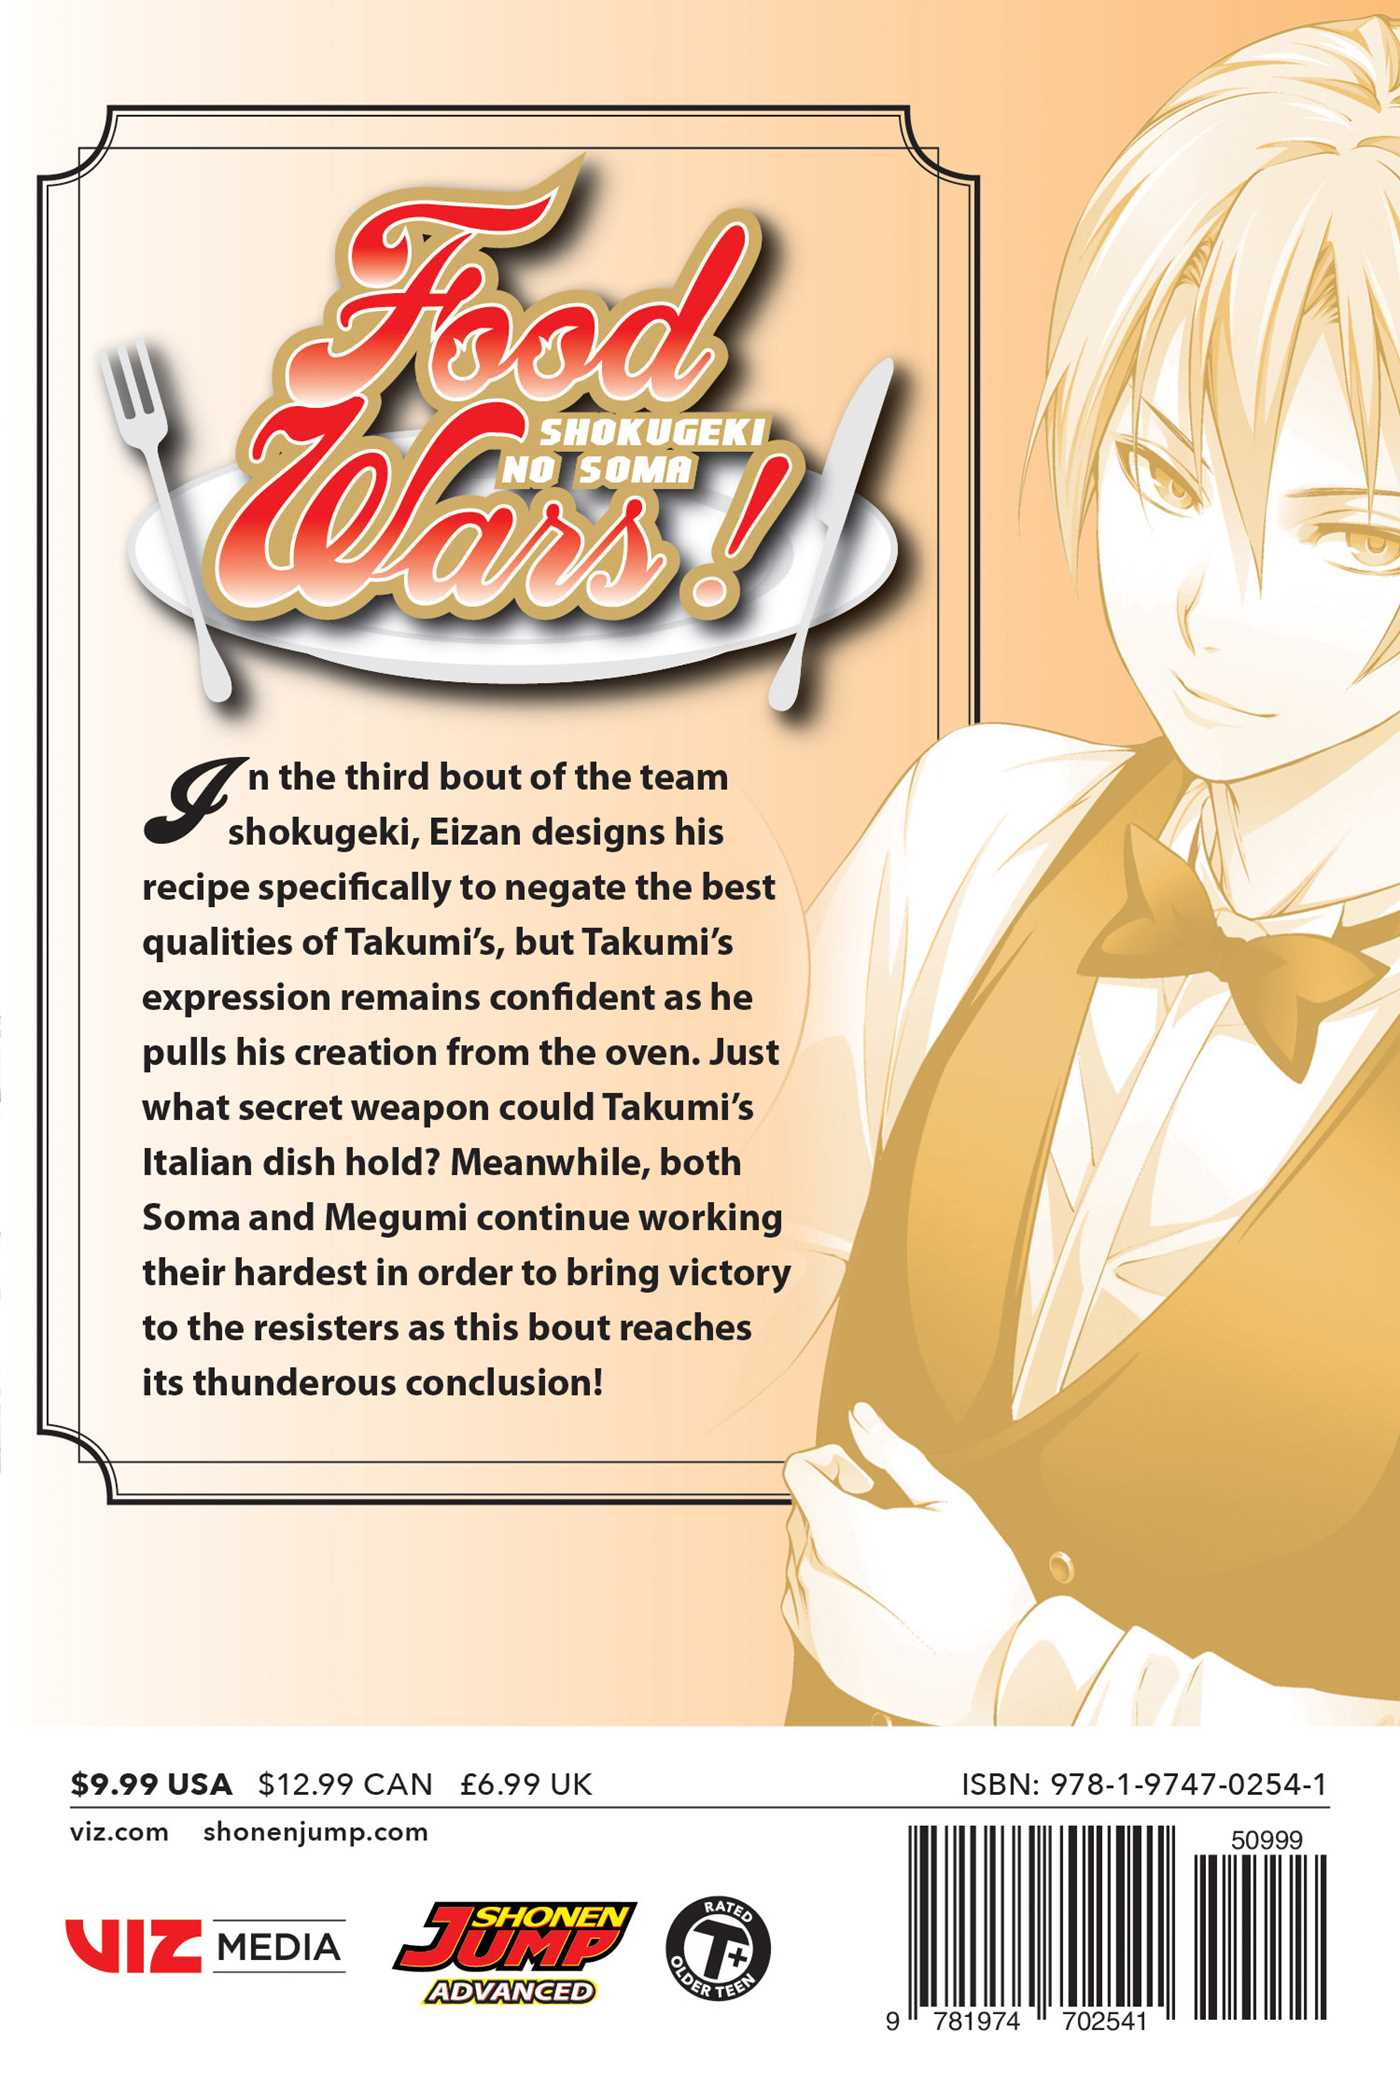 Food wars shokugeki no soma vol 28 9781974702541 hr back